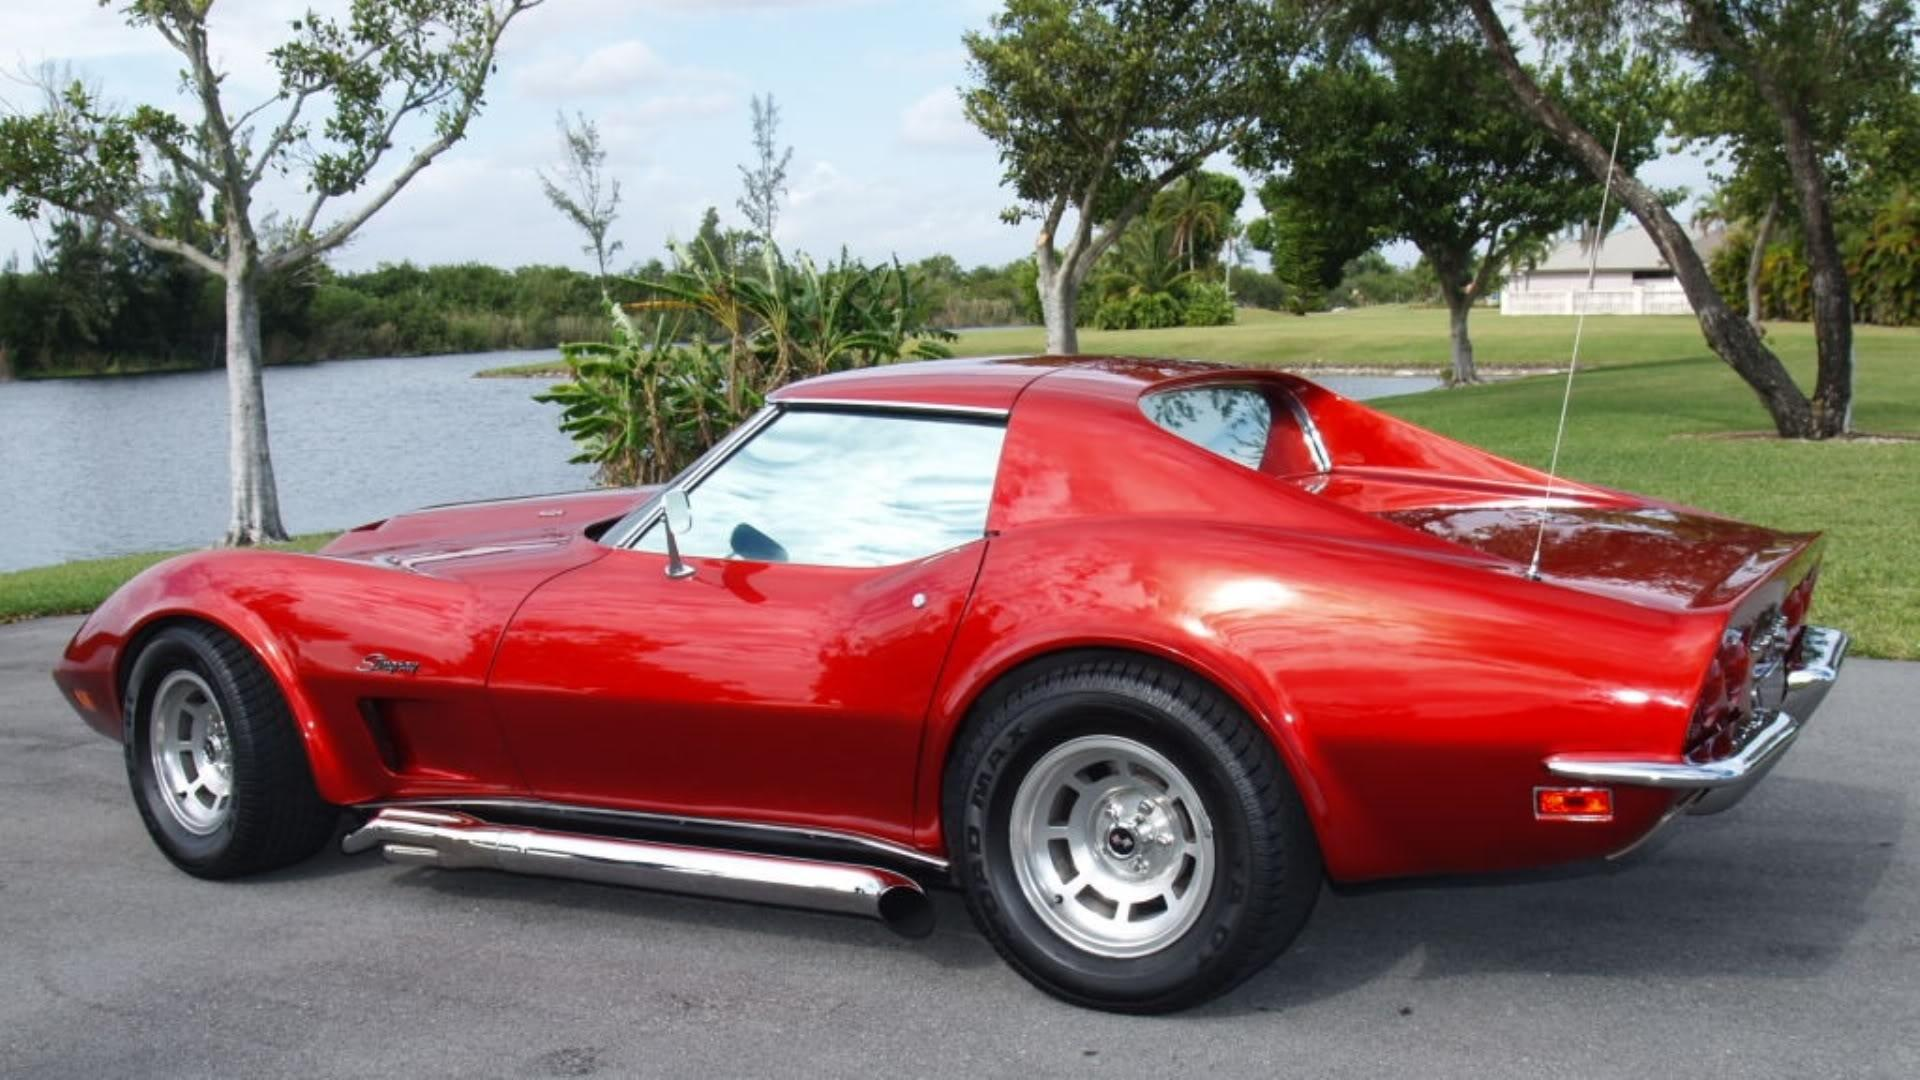 1975 Corvette For Sale >> 1973 C3 Corvette | Ultimate Guide (Overview, Specs, VIN Info, Performance & More)